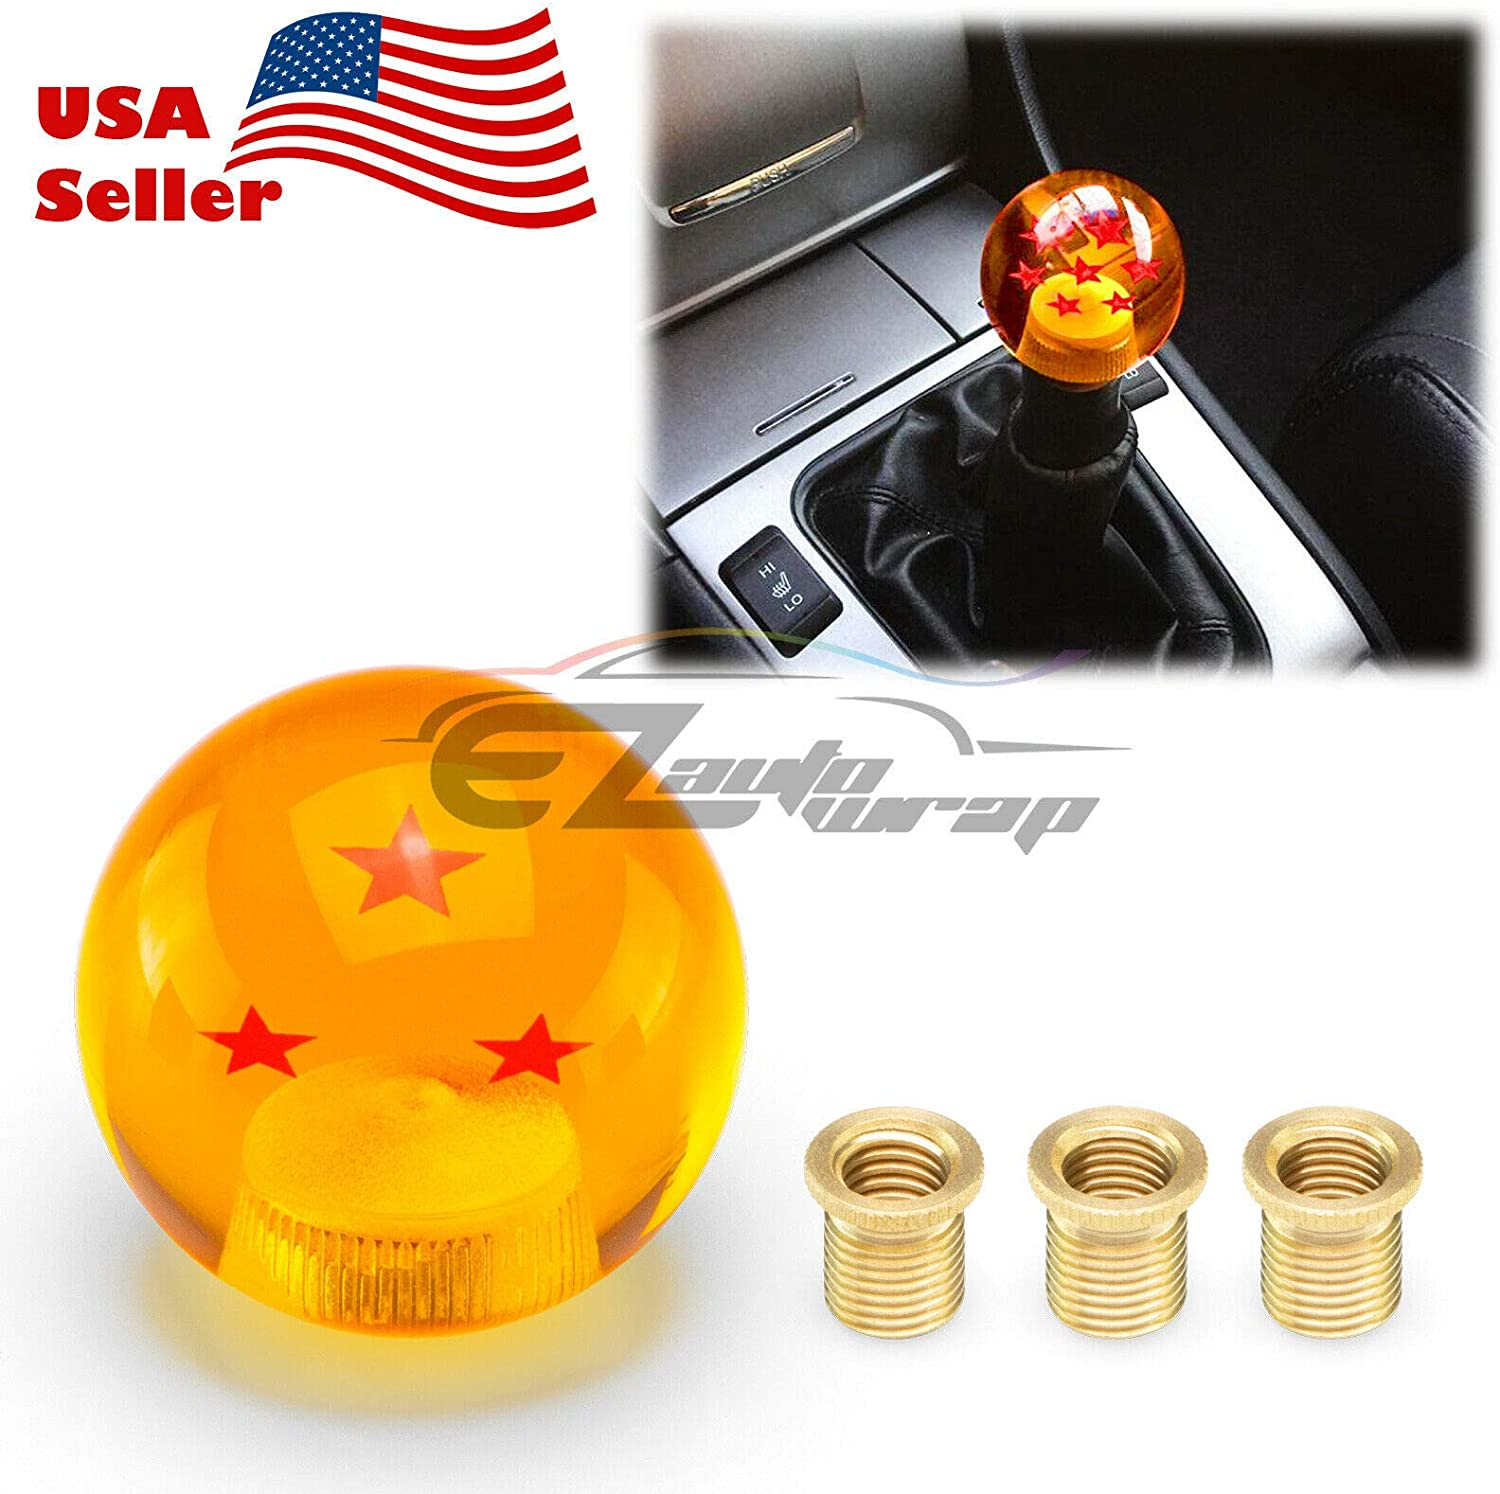 EZAUTOWRAP Universal Blue Dragon Ball Z 3 Star 54mm Shift Knob with Adapters Will Fit Most Cars